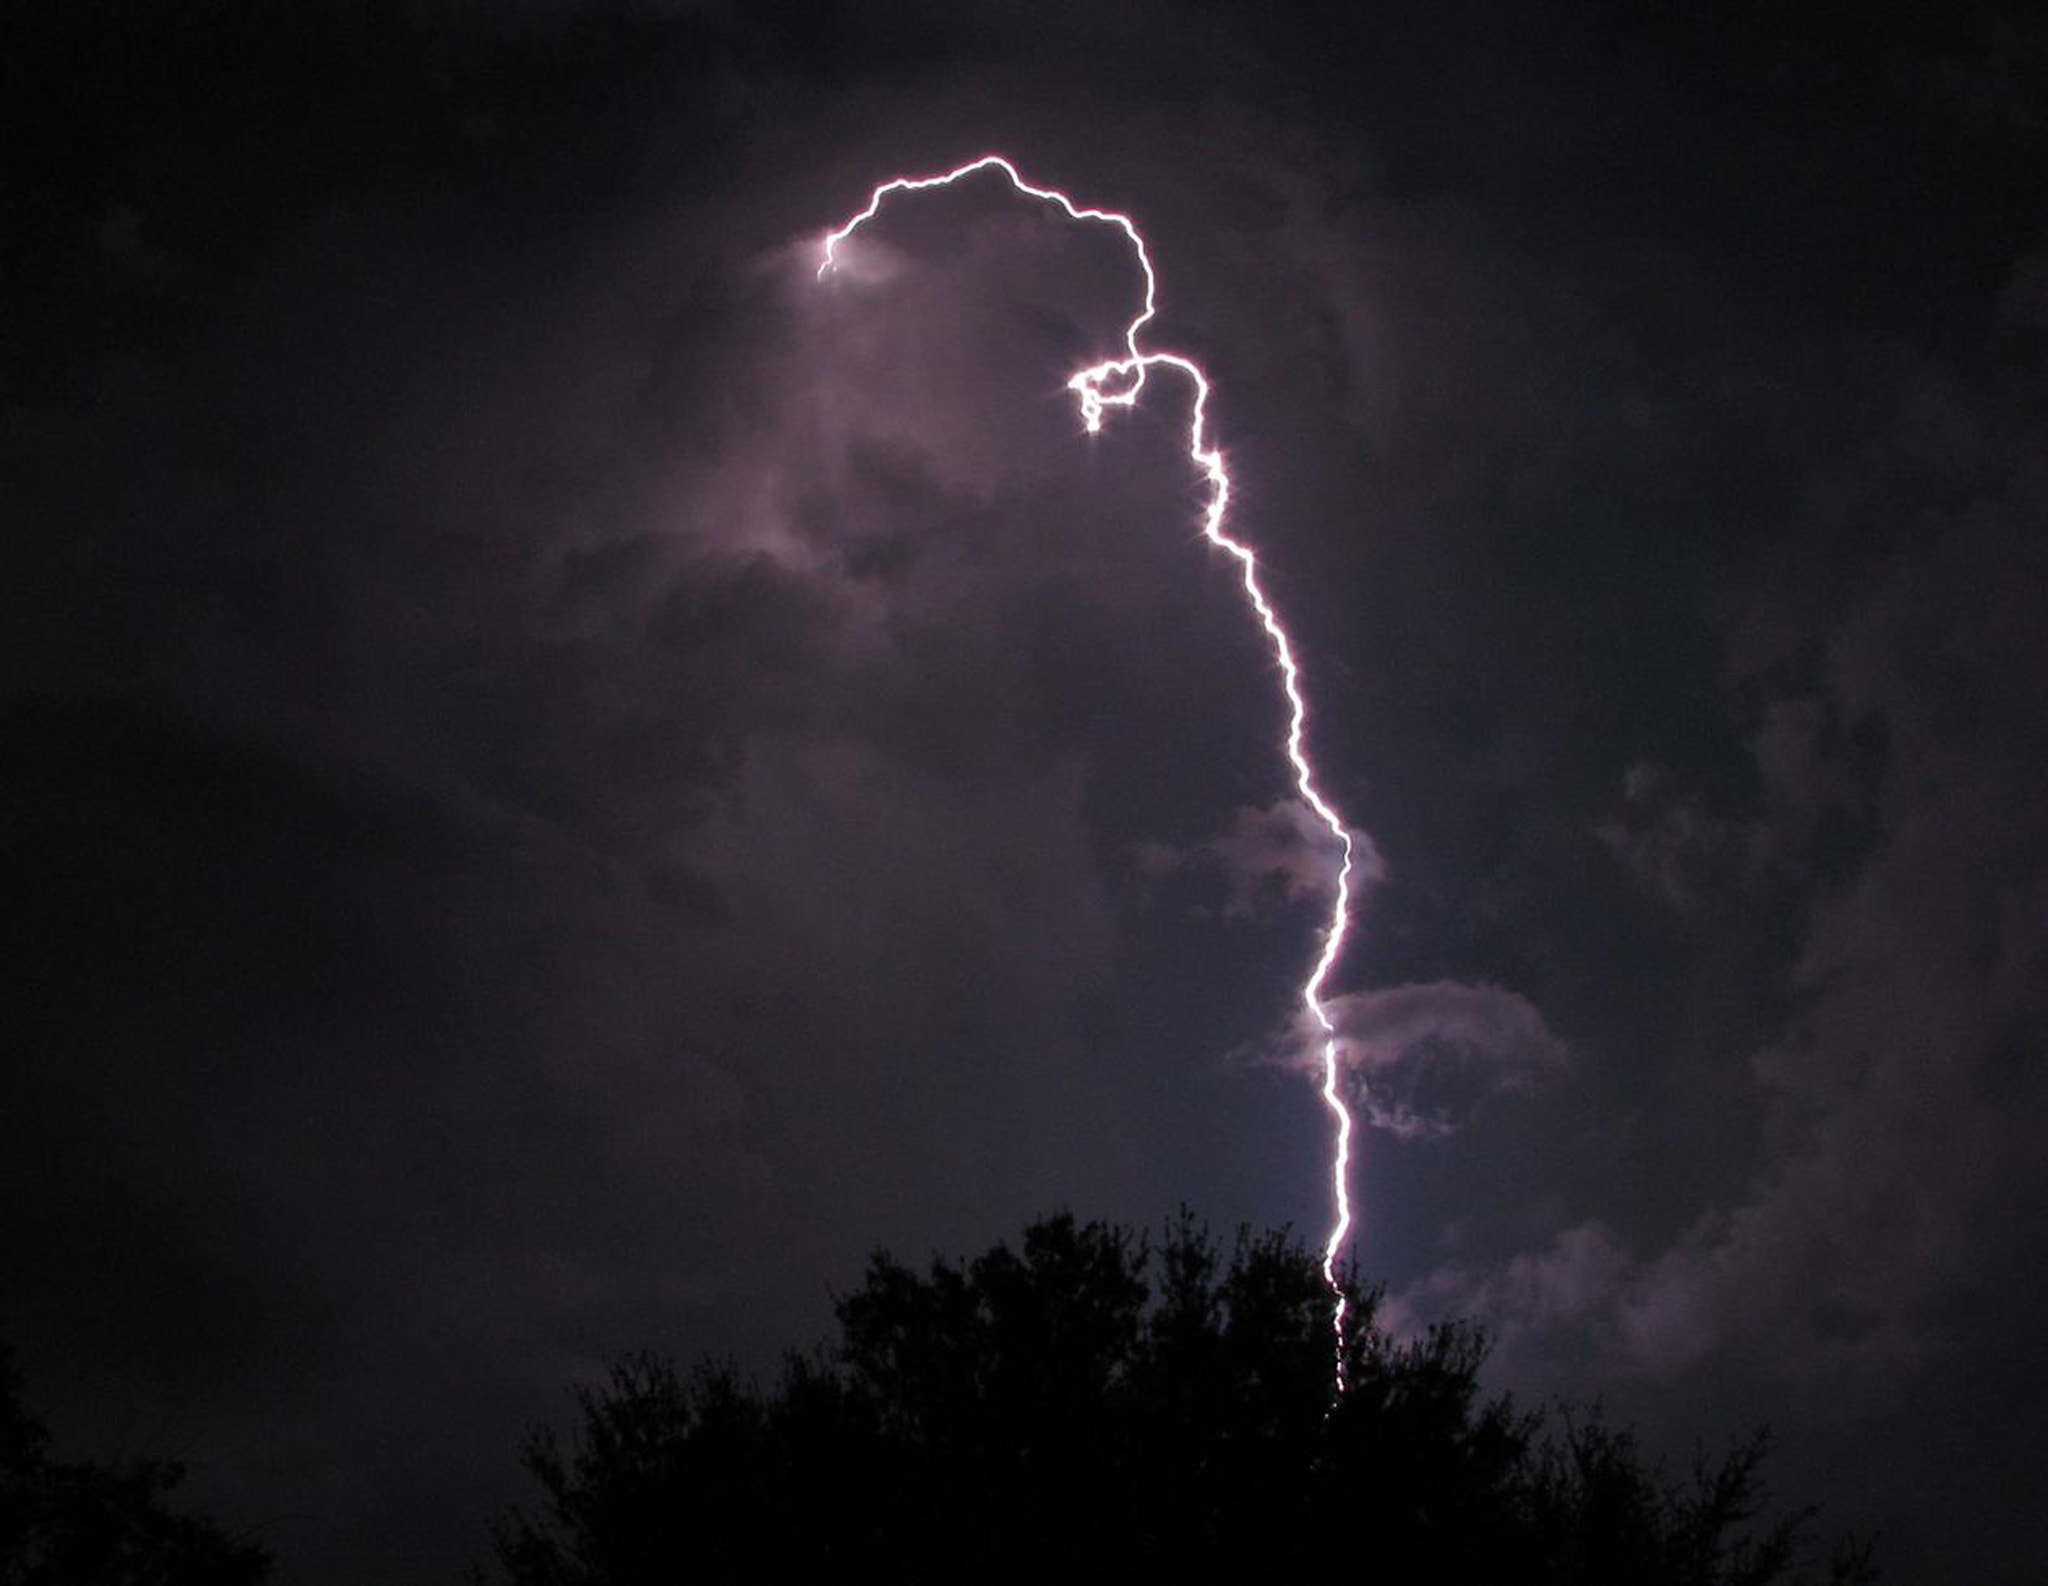 Photograph Lightning Loop by David Hicks on 500px